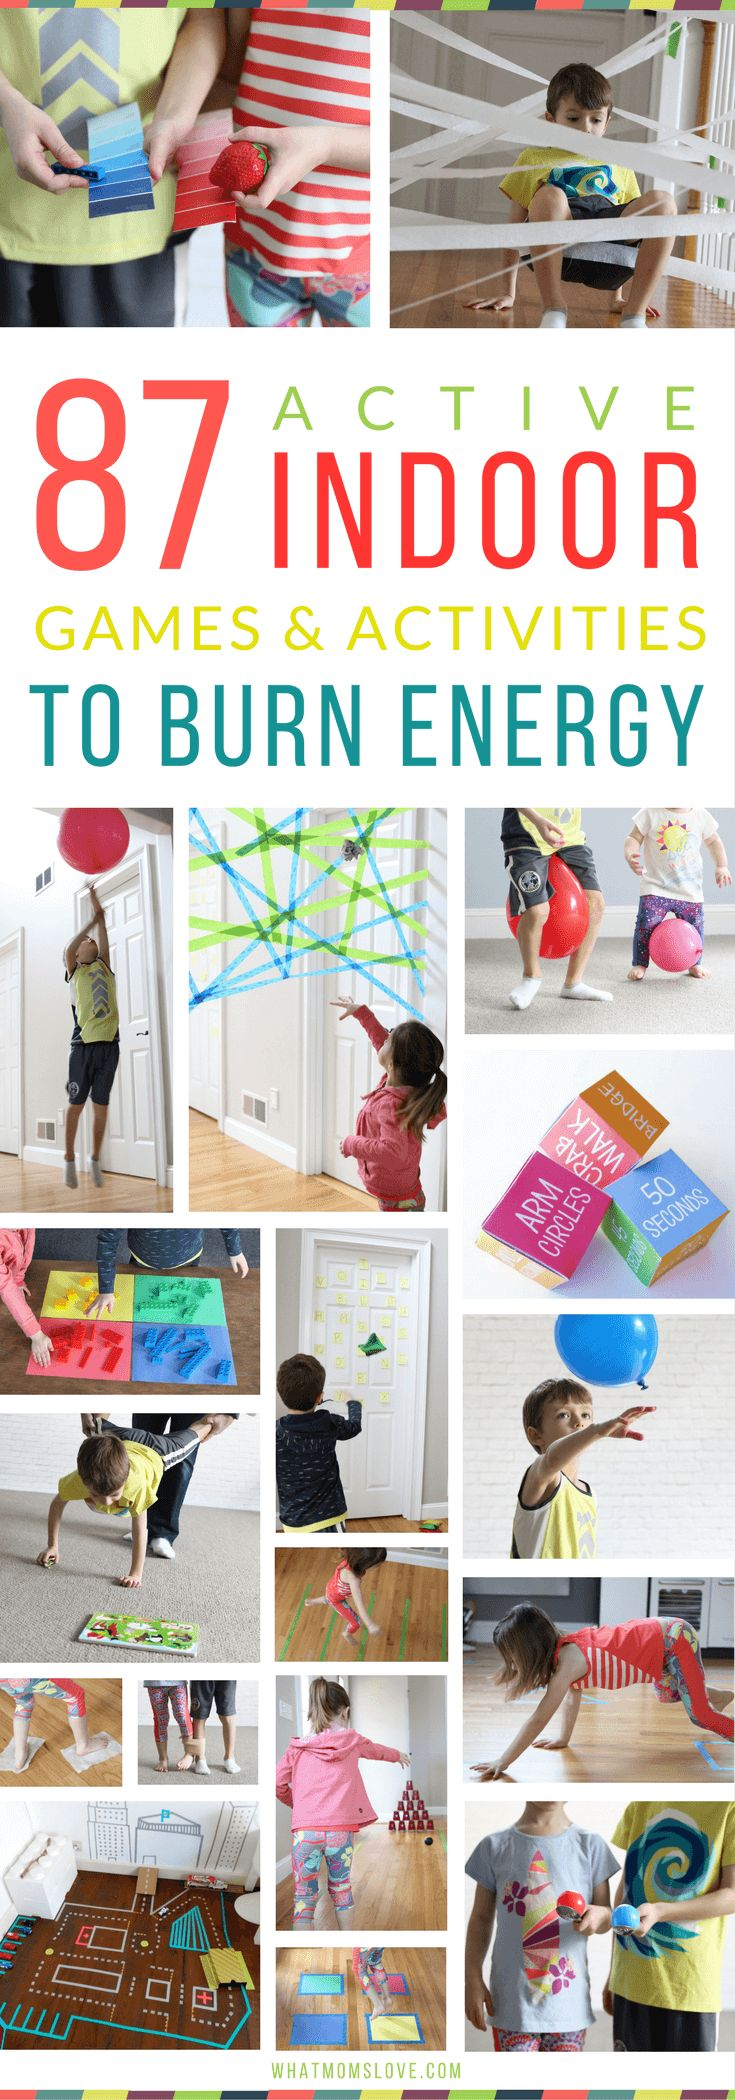 Best Active Indoor Activities For Kids | Fun Gross Motor Games and Creative Ideas For Winter (snow days!), Spring (rainy days!) or for when Cabin Fever strikes | Awesome Boredom Busters and Brain Breaks for High Energy Toddlers, Preschool and beyond via @whatmomslove